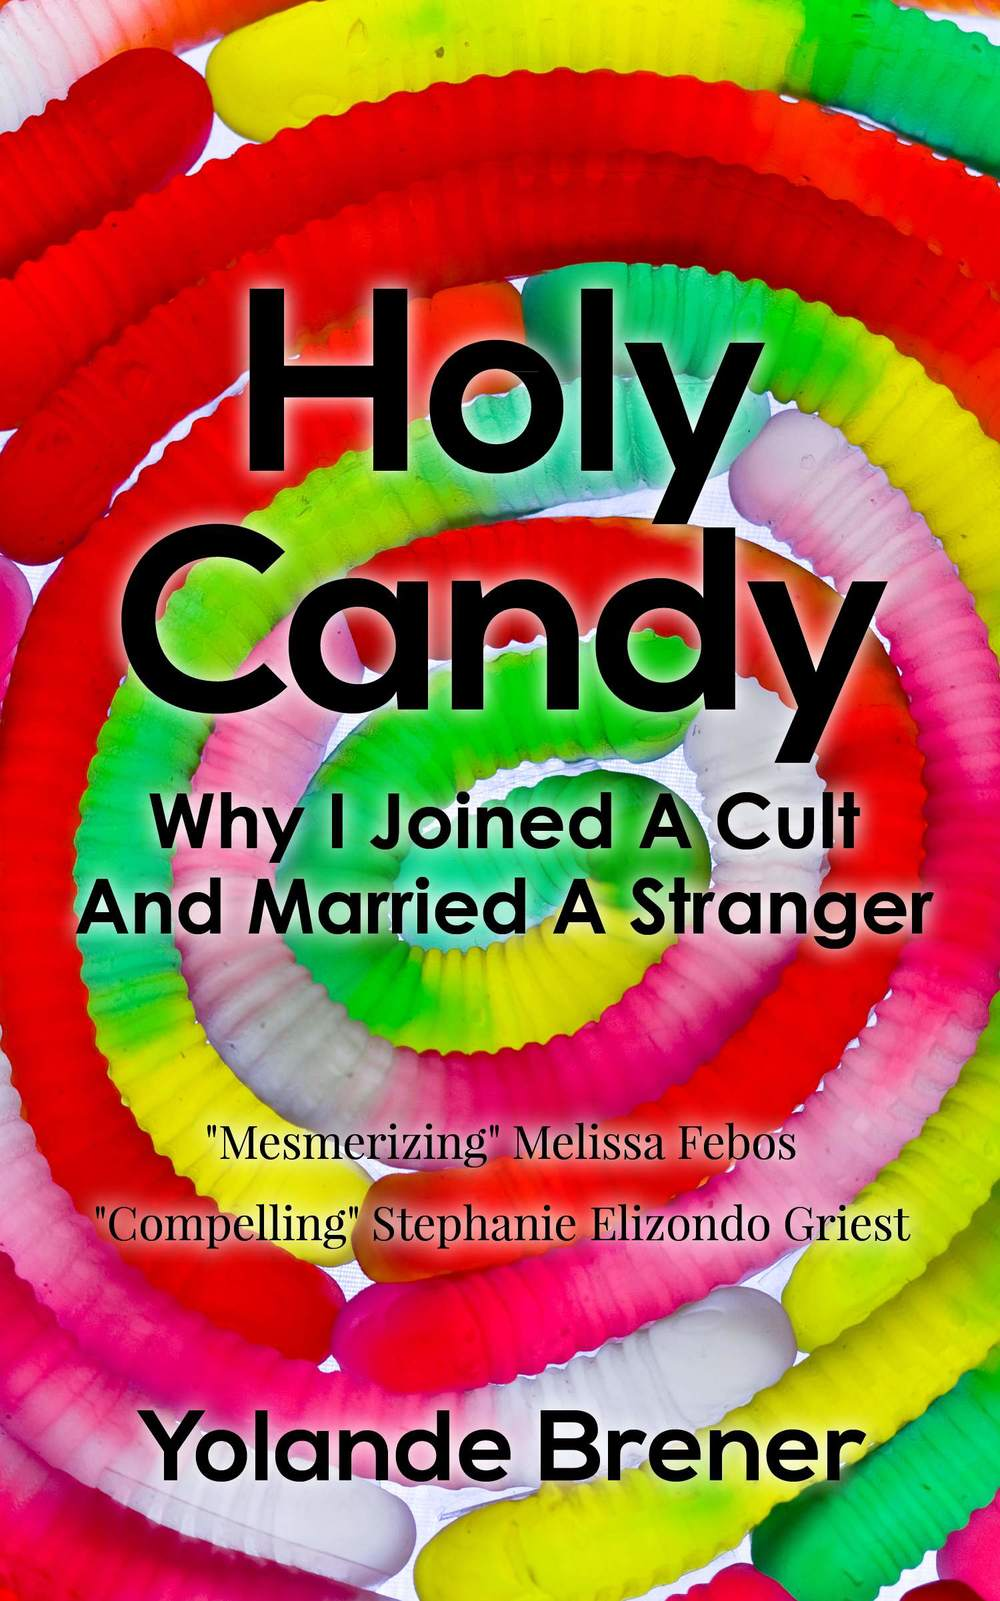 holy-candy-new-black1.jpg